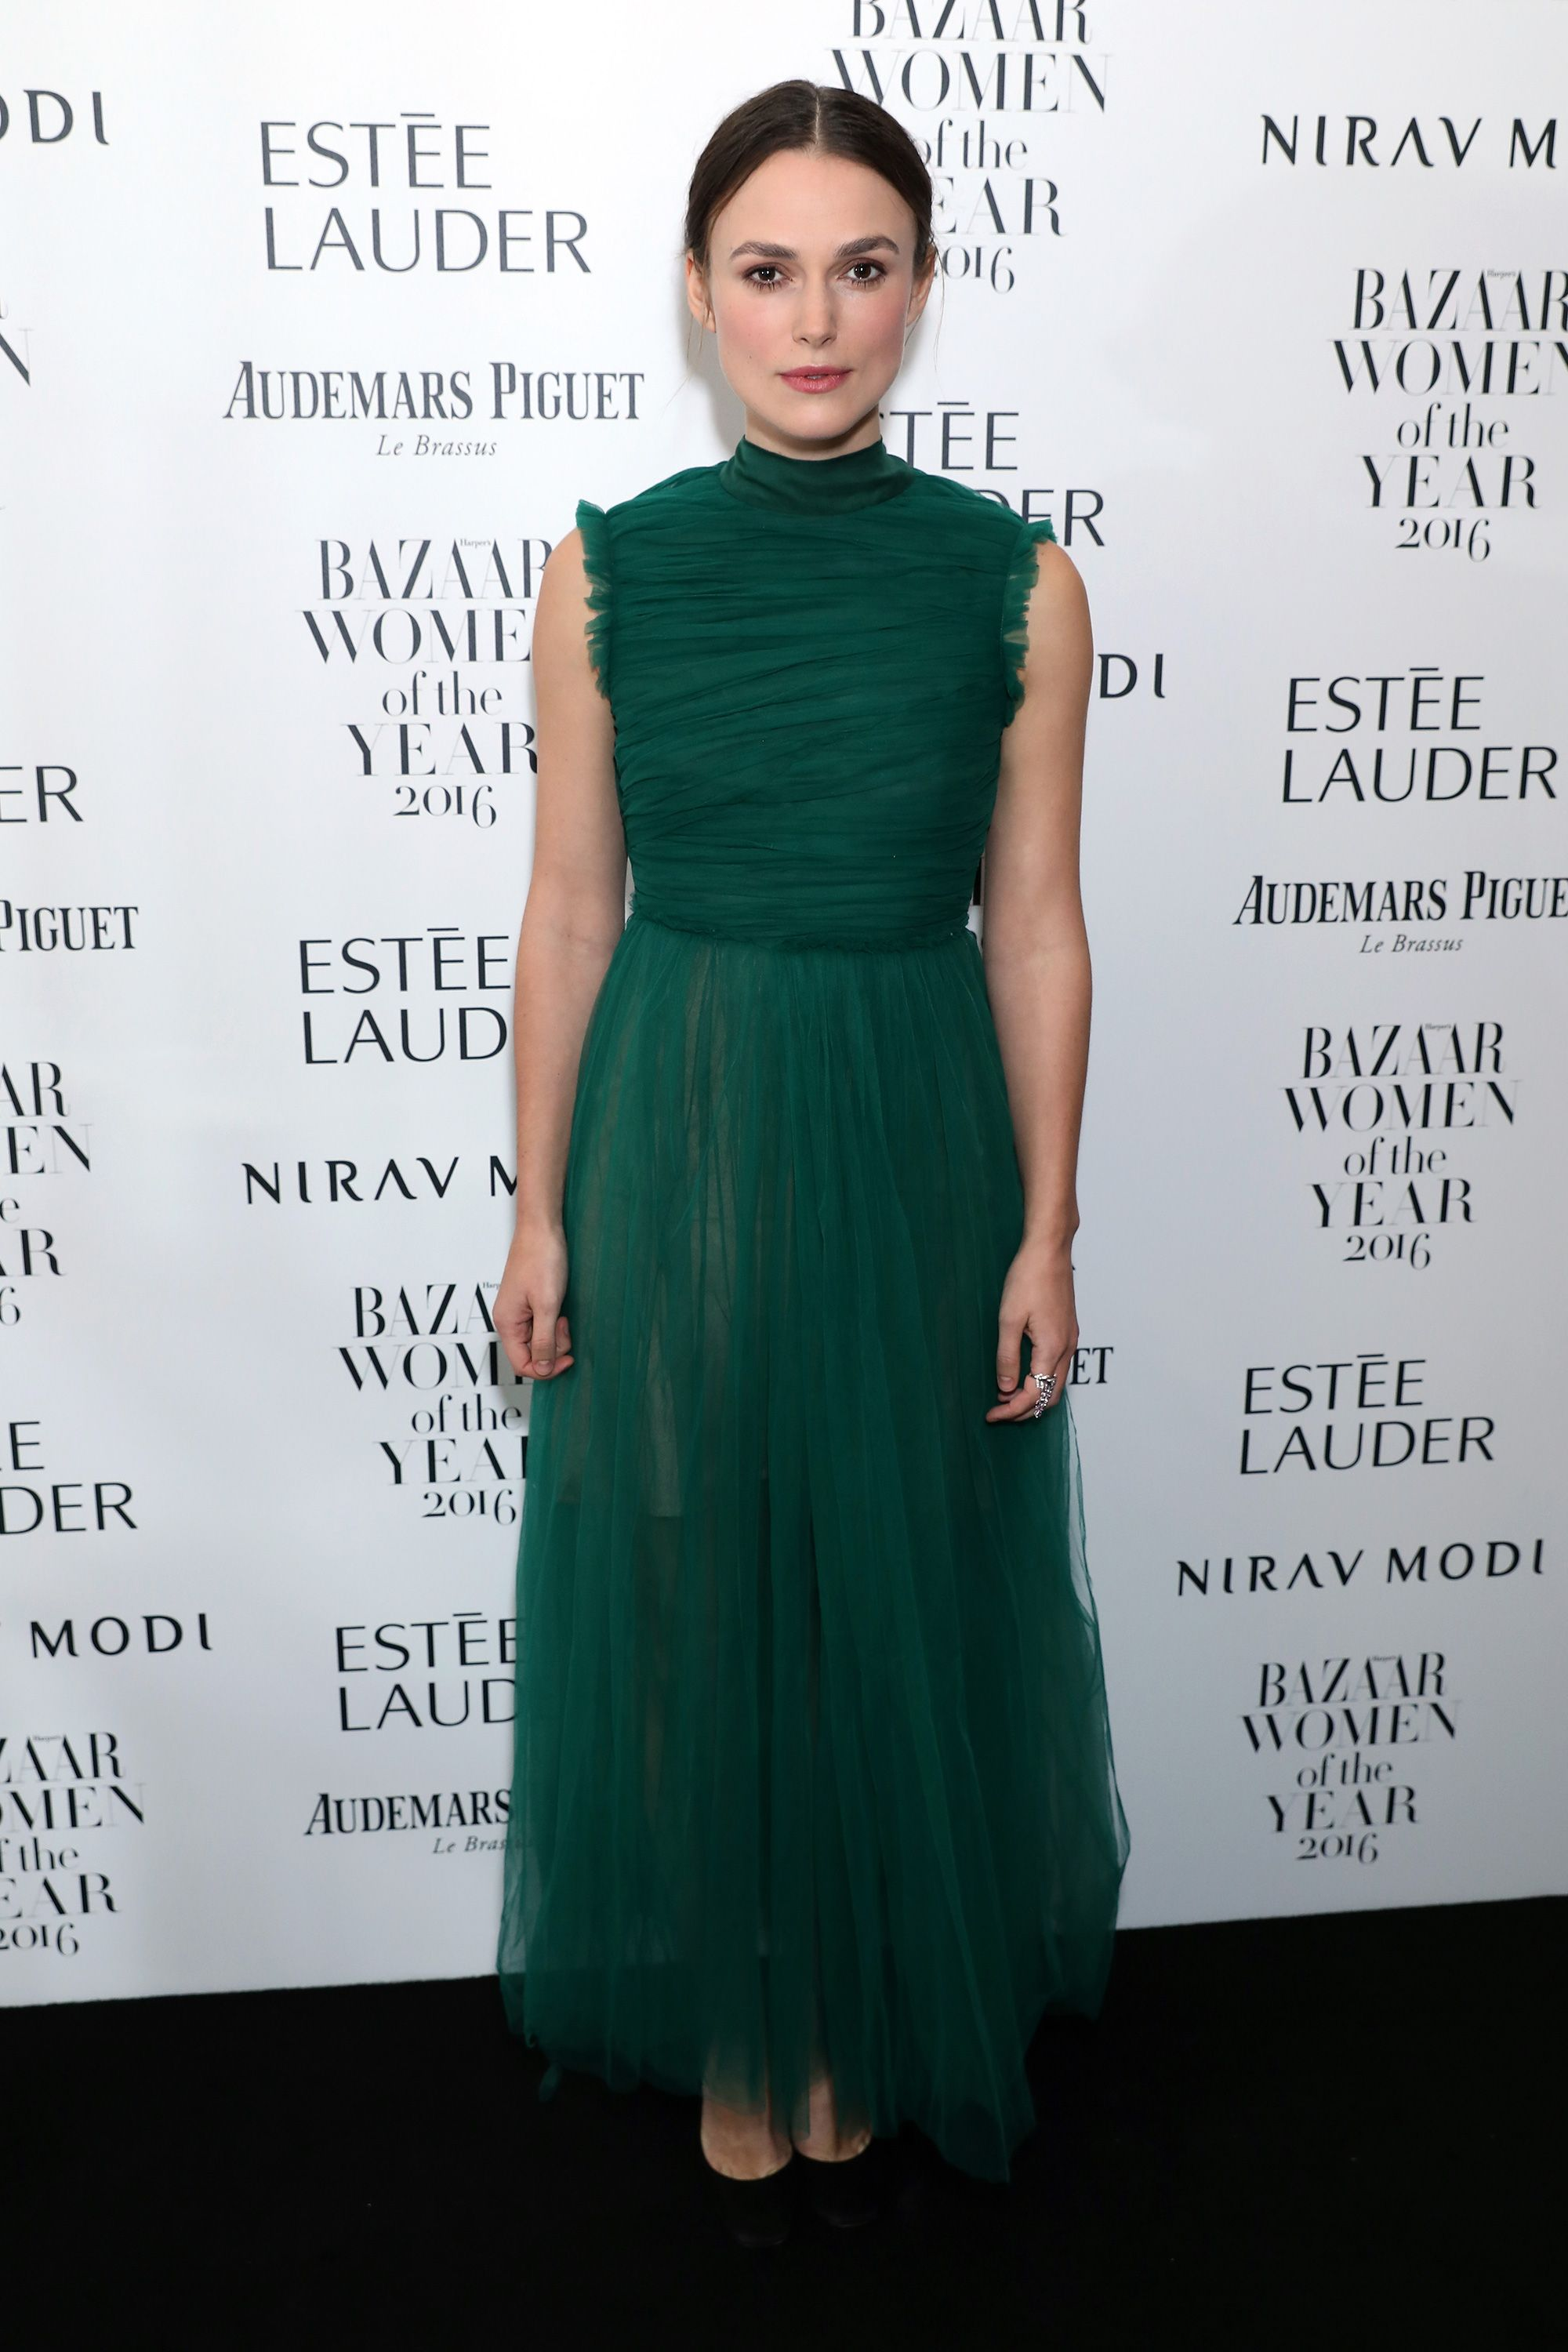 Keira Knightley at the 2016 Harper's Bazaar Women of the Year Awards